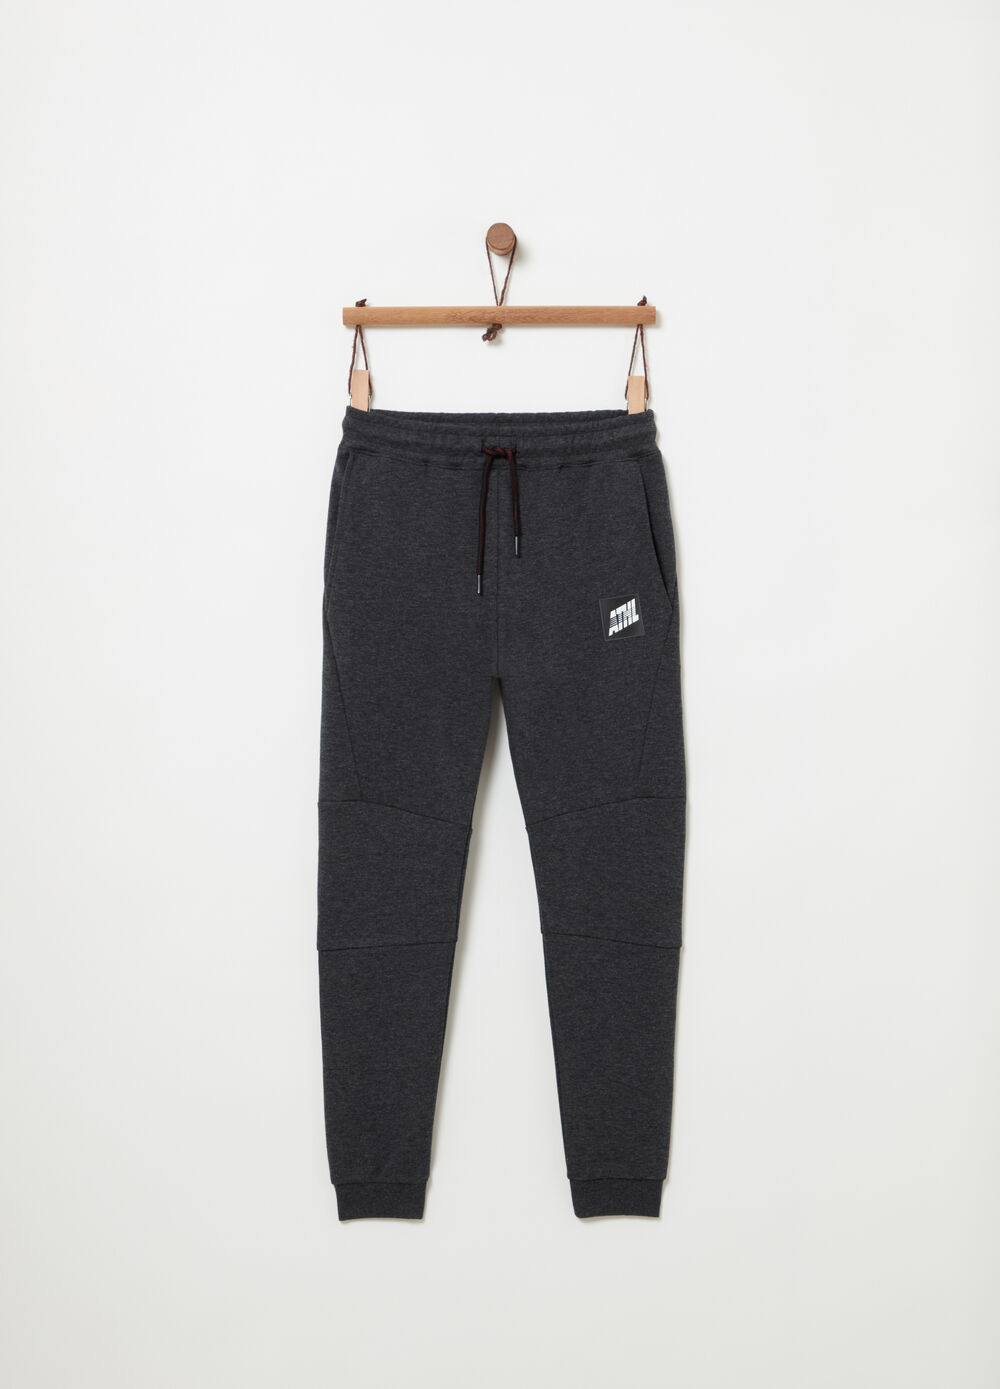 Interlock trousers with drawstring and ribbing